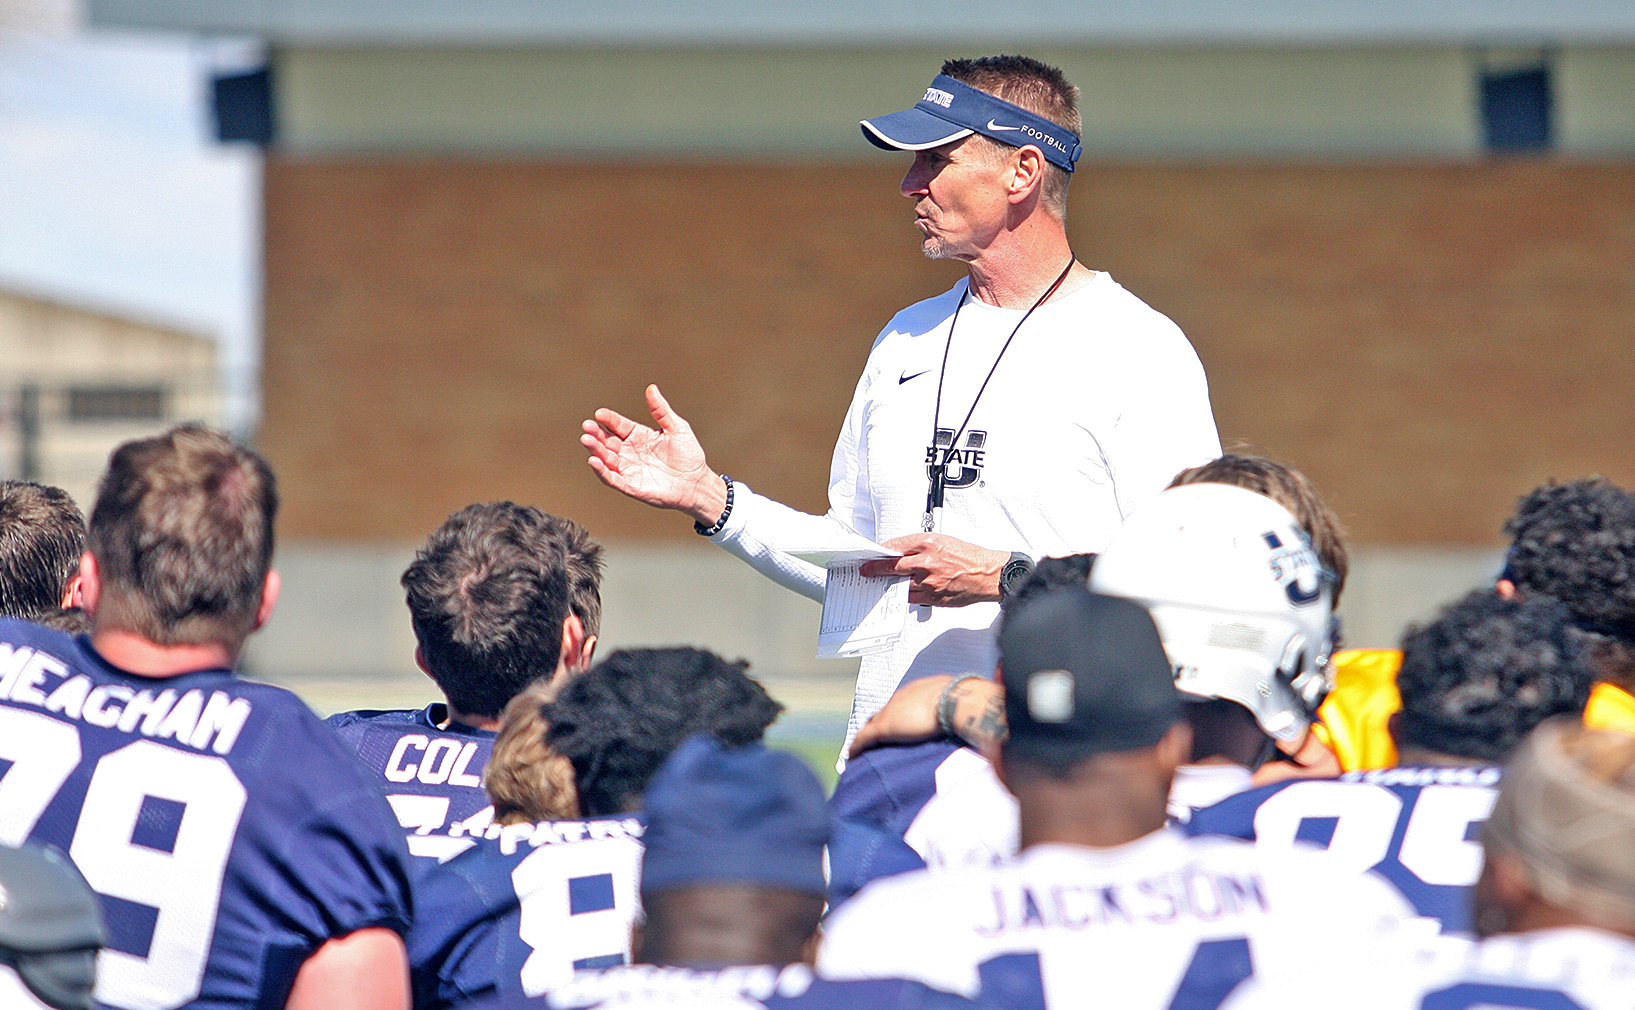 Utah State head football coach Gary Andersen talks to his team at the end of Saturday's scrimmage at Maverik Stadium in Logan.